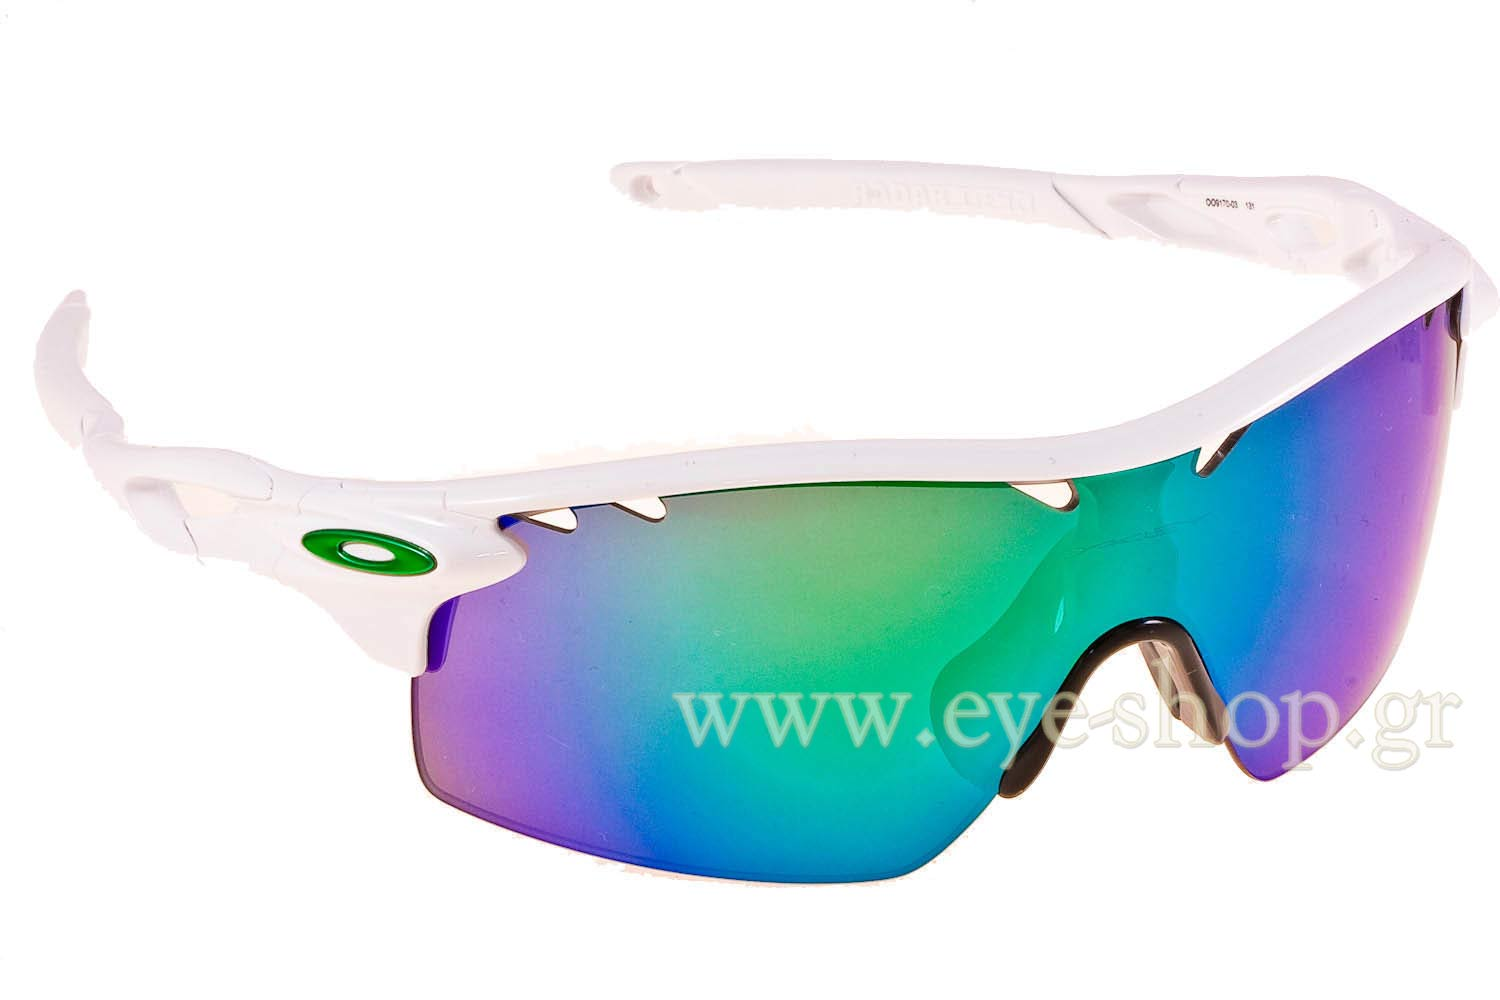 oakley radarlock discontinued